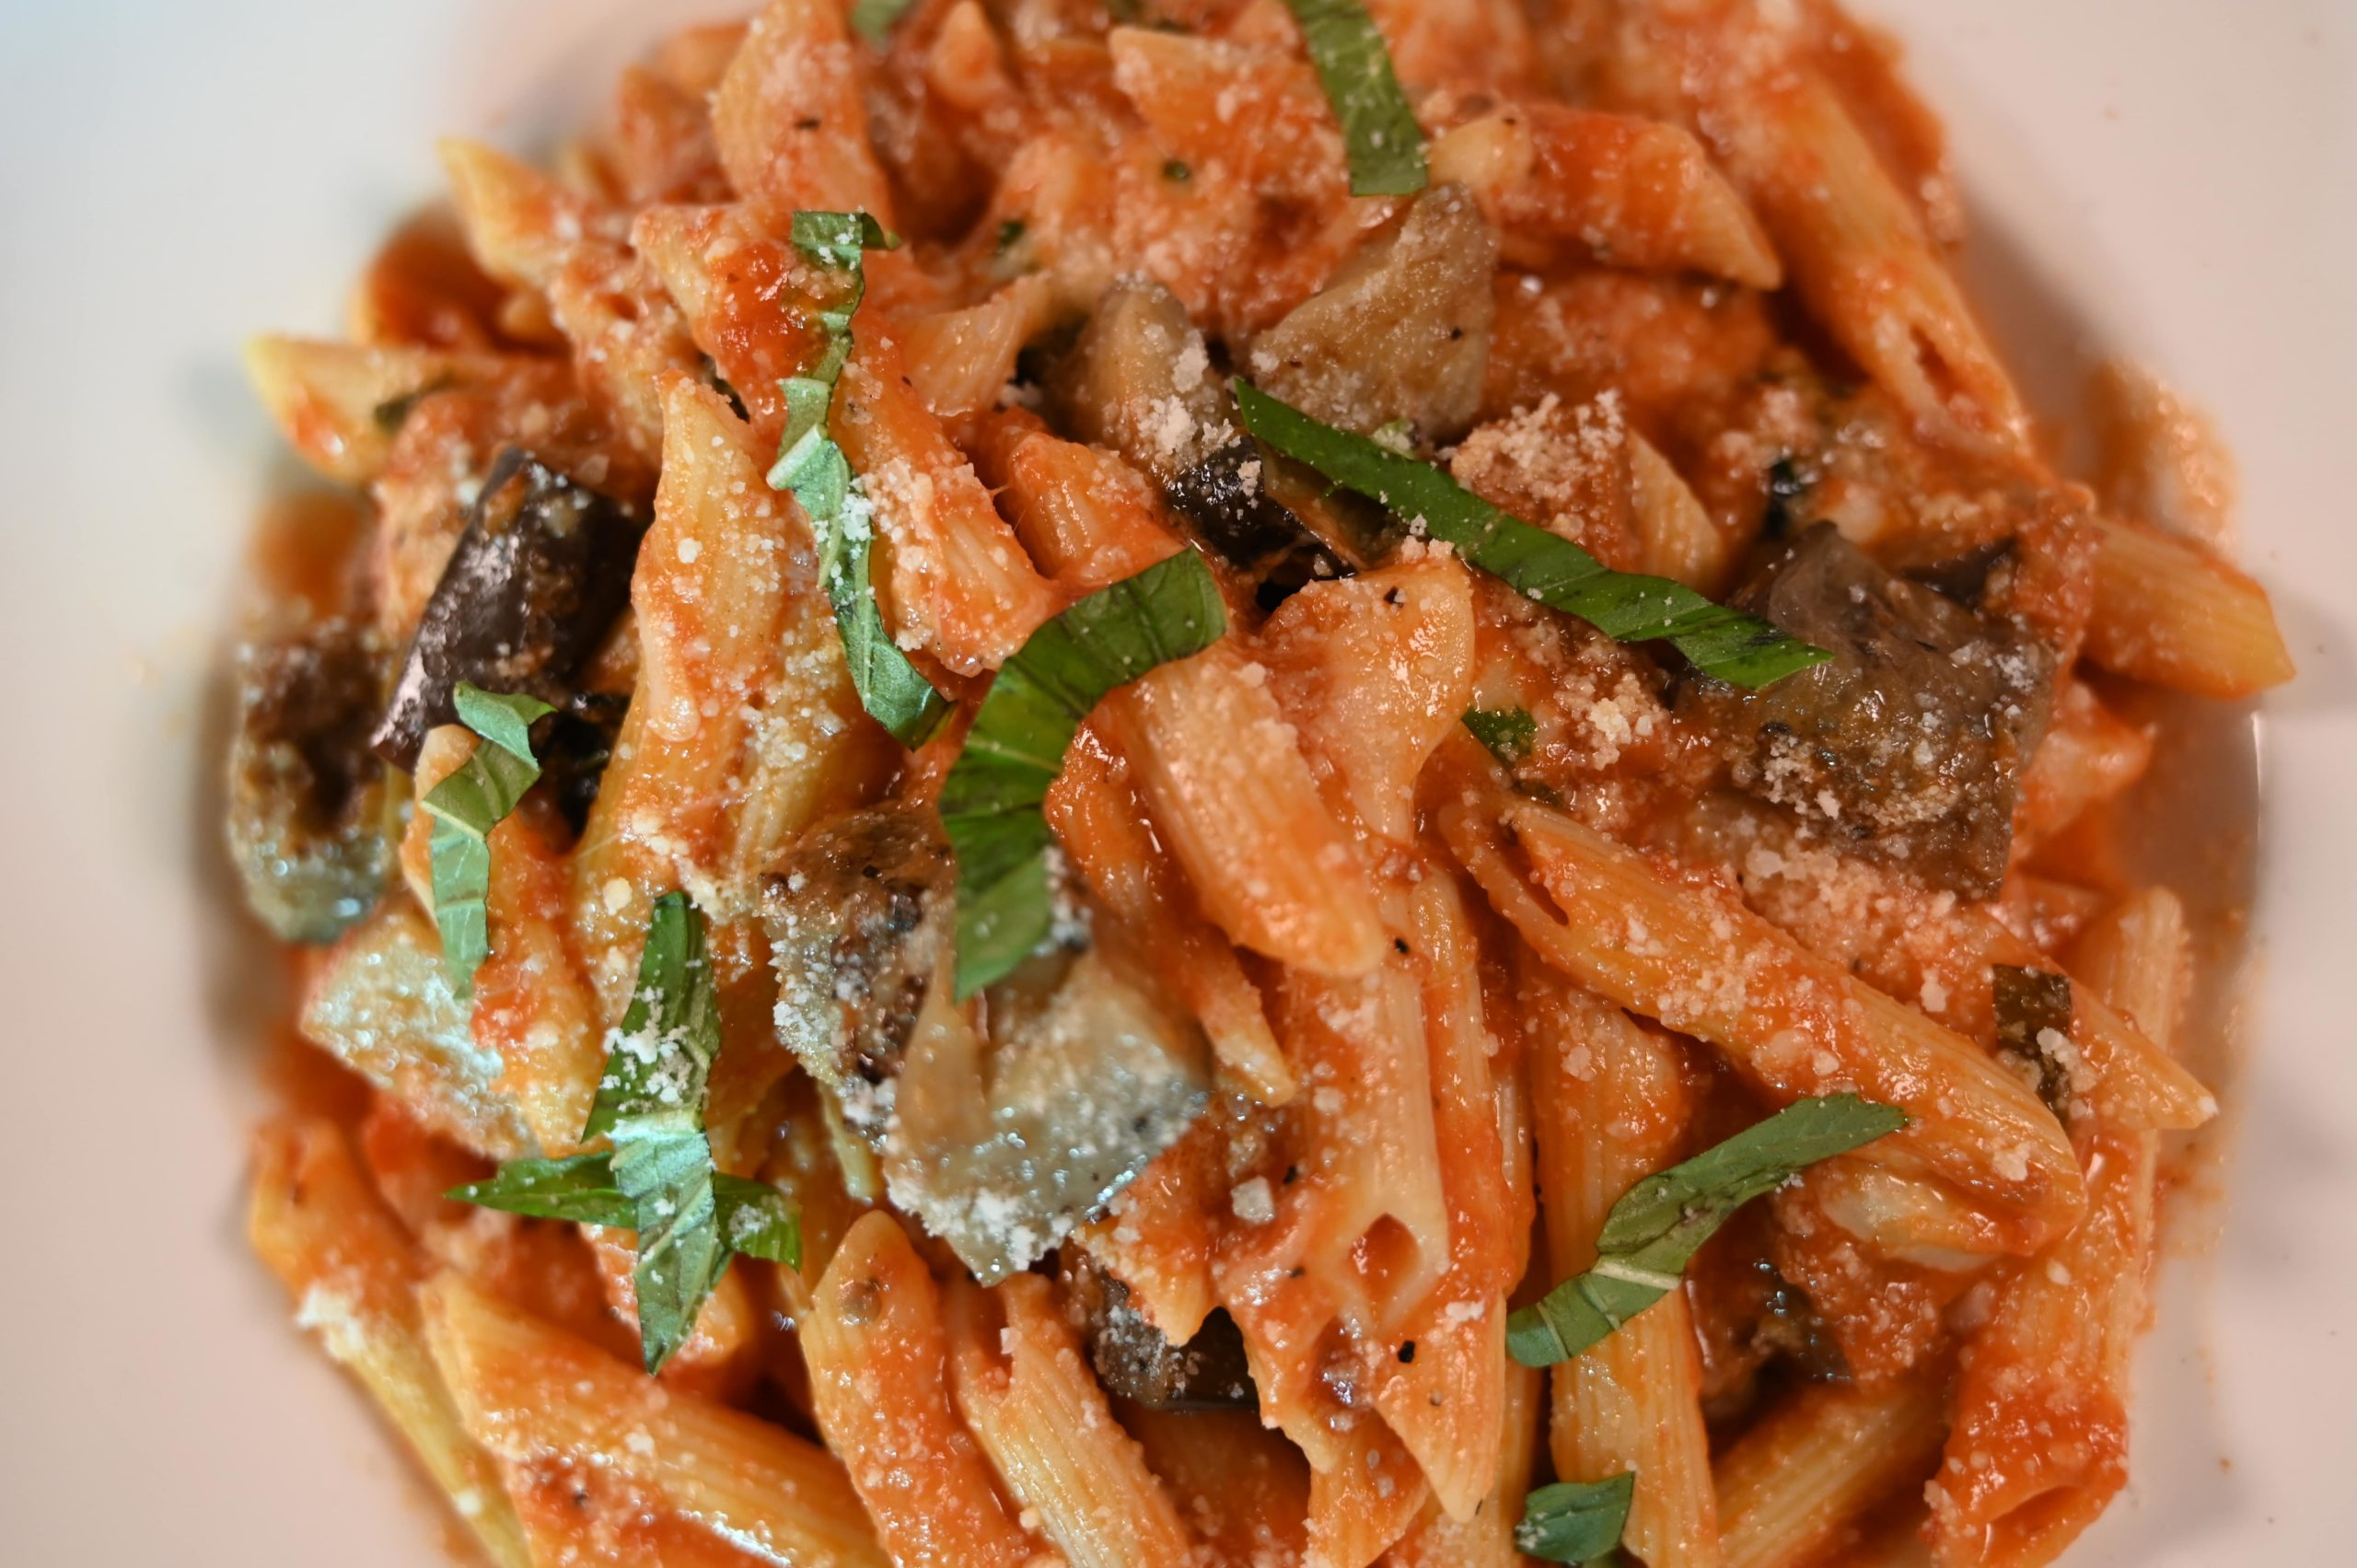 Taormina, sweet sausage, plum tomatoes, garlic, extra virgin olive oil, spinach, parmigiana cheese, penne pasta